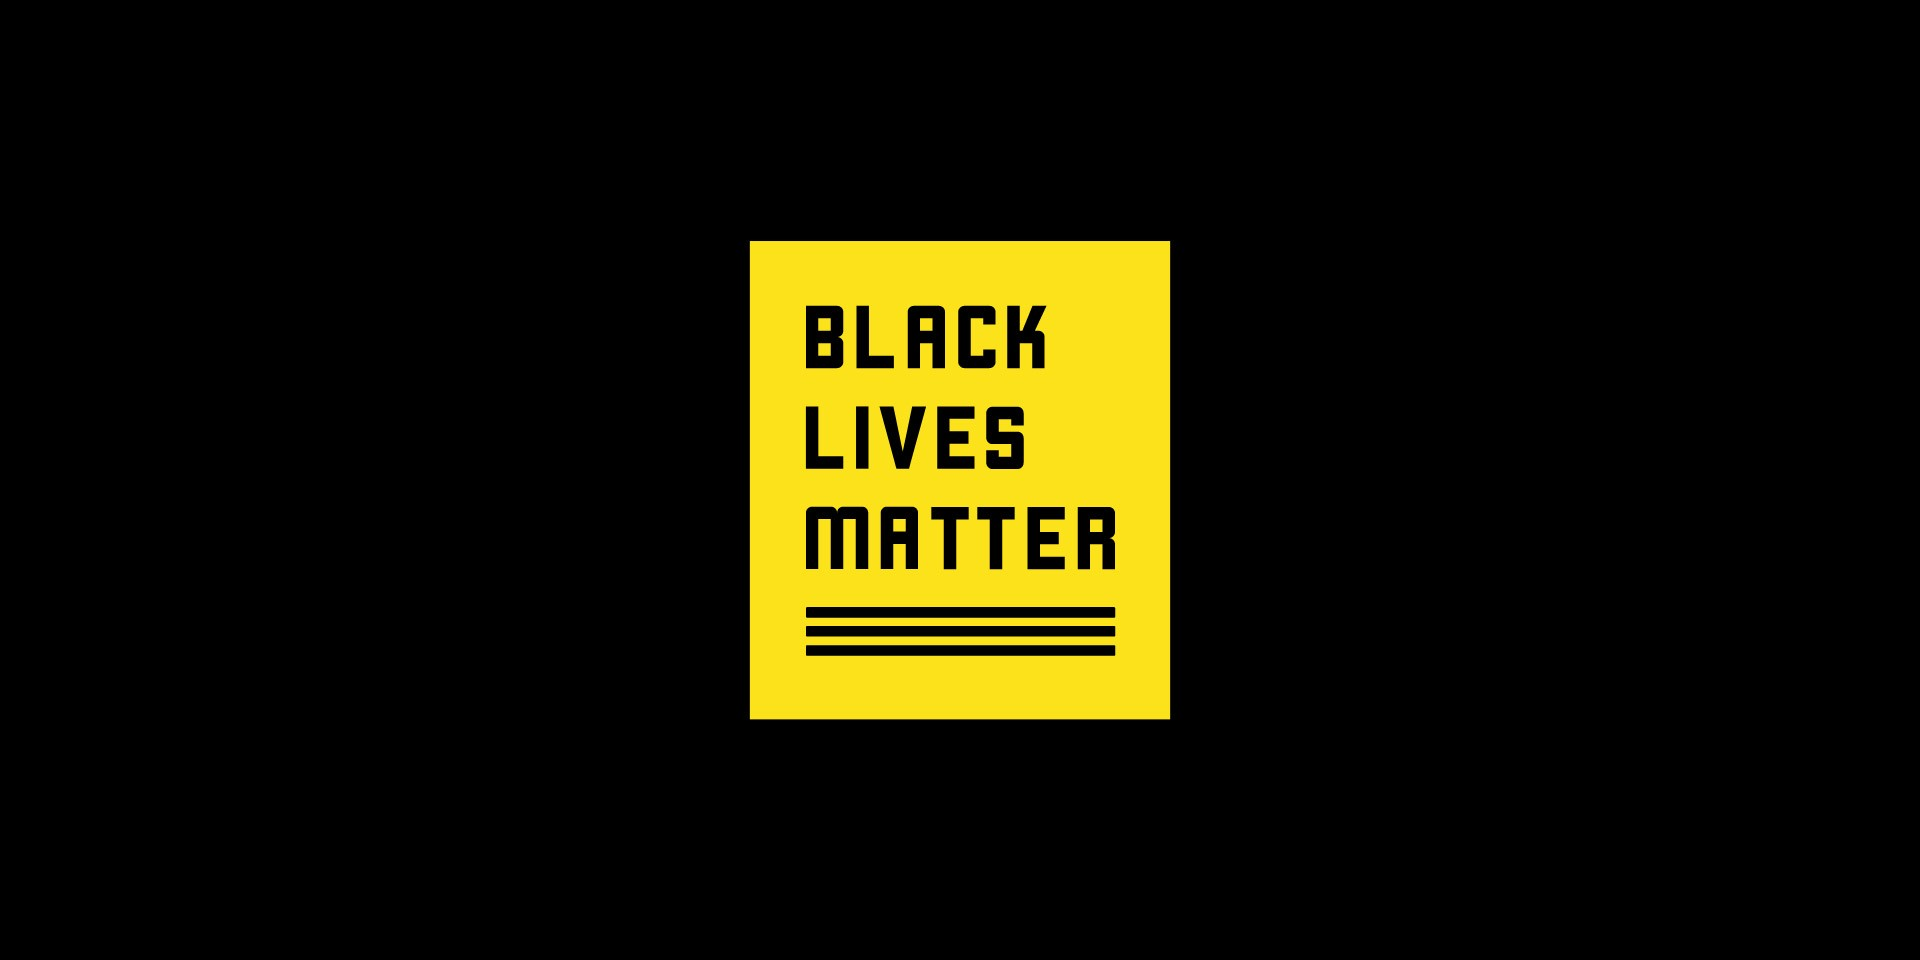 Asian artists take a stand to support the Black Lives Matter movement